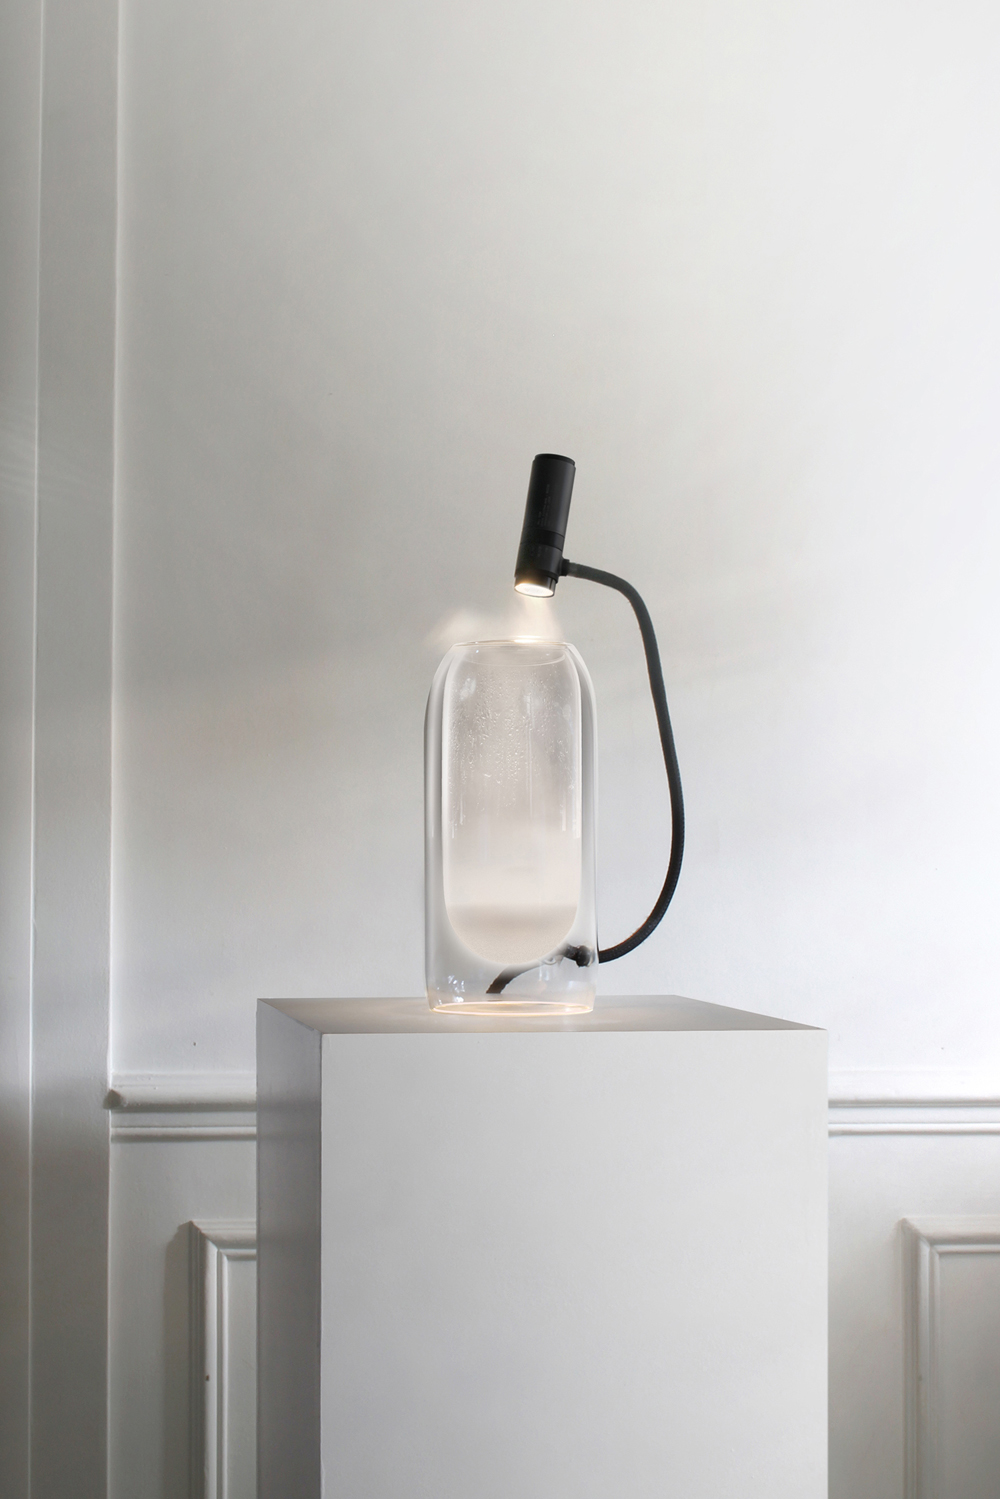 Brume fills your dwelling with soft light thanks to the mist, which is created inside it